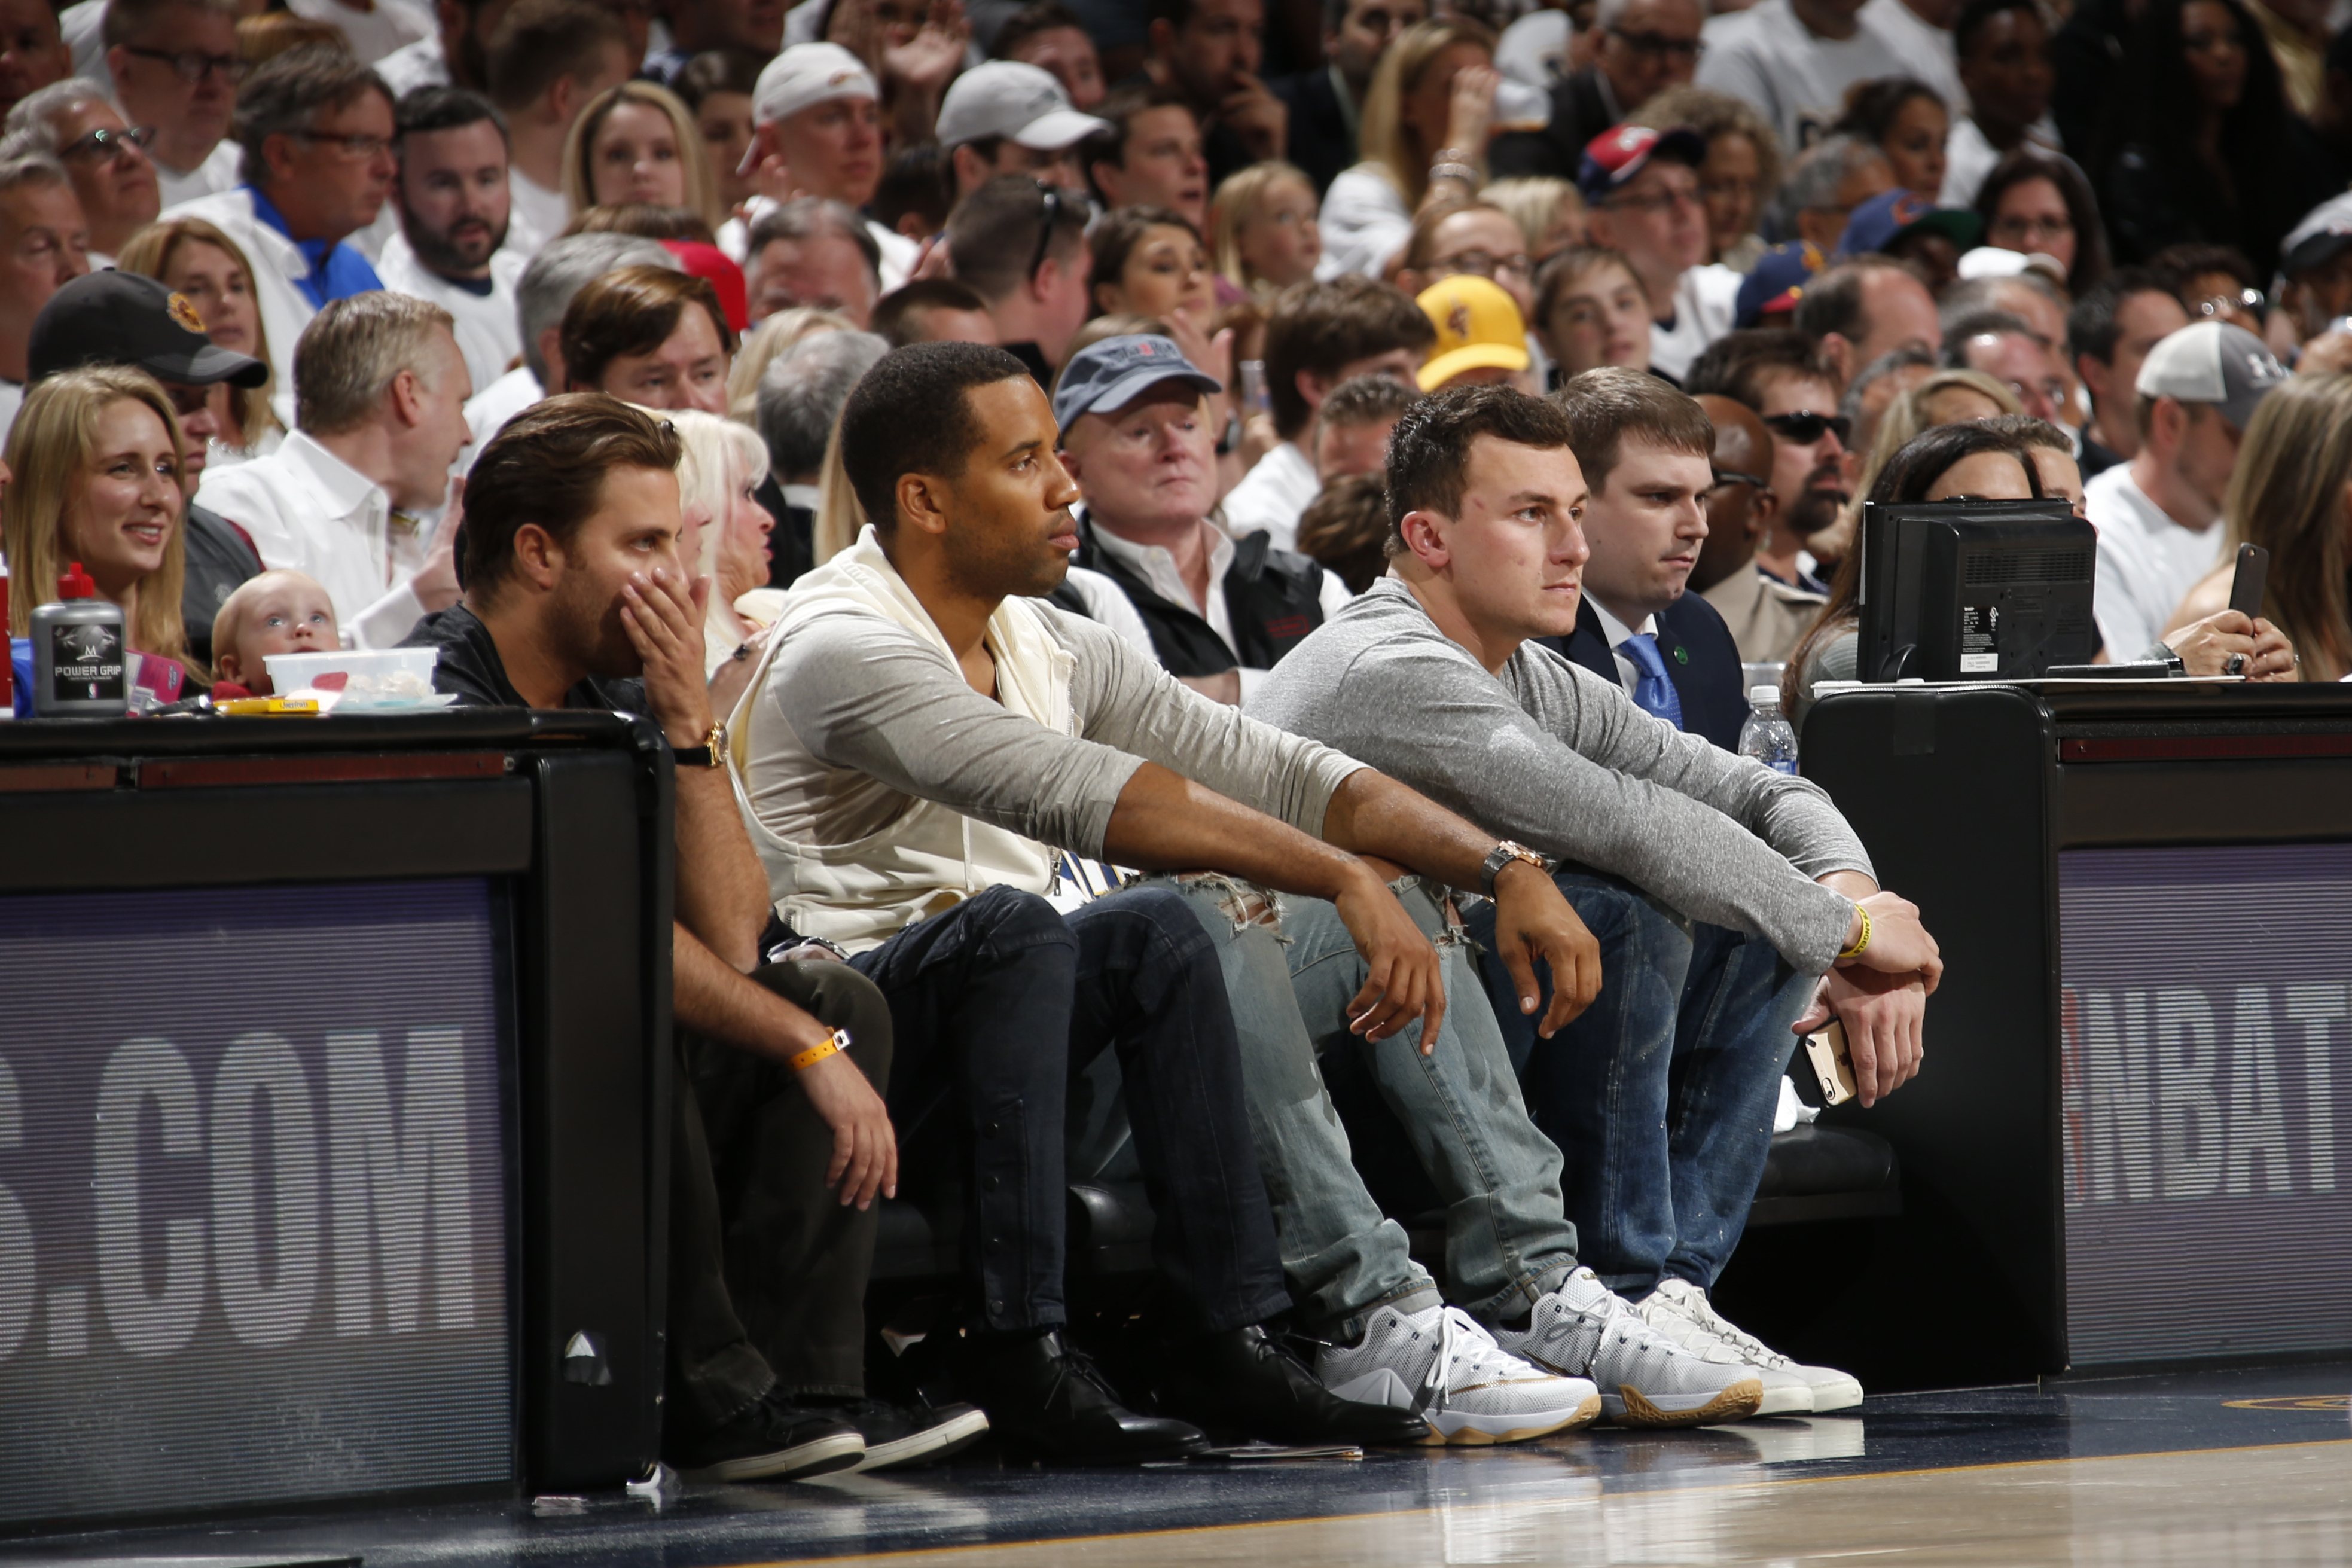 CLEVELAND, OH - APRIL 19:  Cleveland Brown Johnny Manziel attends the game between the Boston Celtics and Cleveland Cavaliers during Game One of the Eastern Conference Quarterfinals of the NBA Playoffs at The Quicken Loans Arena on April 19, 2015 in Cleve